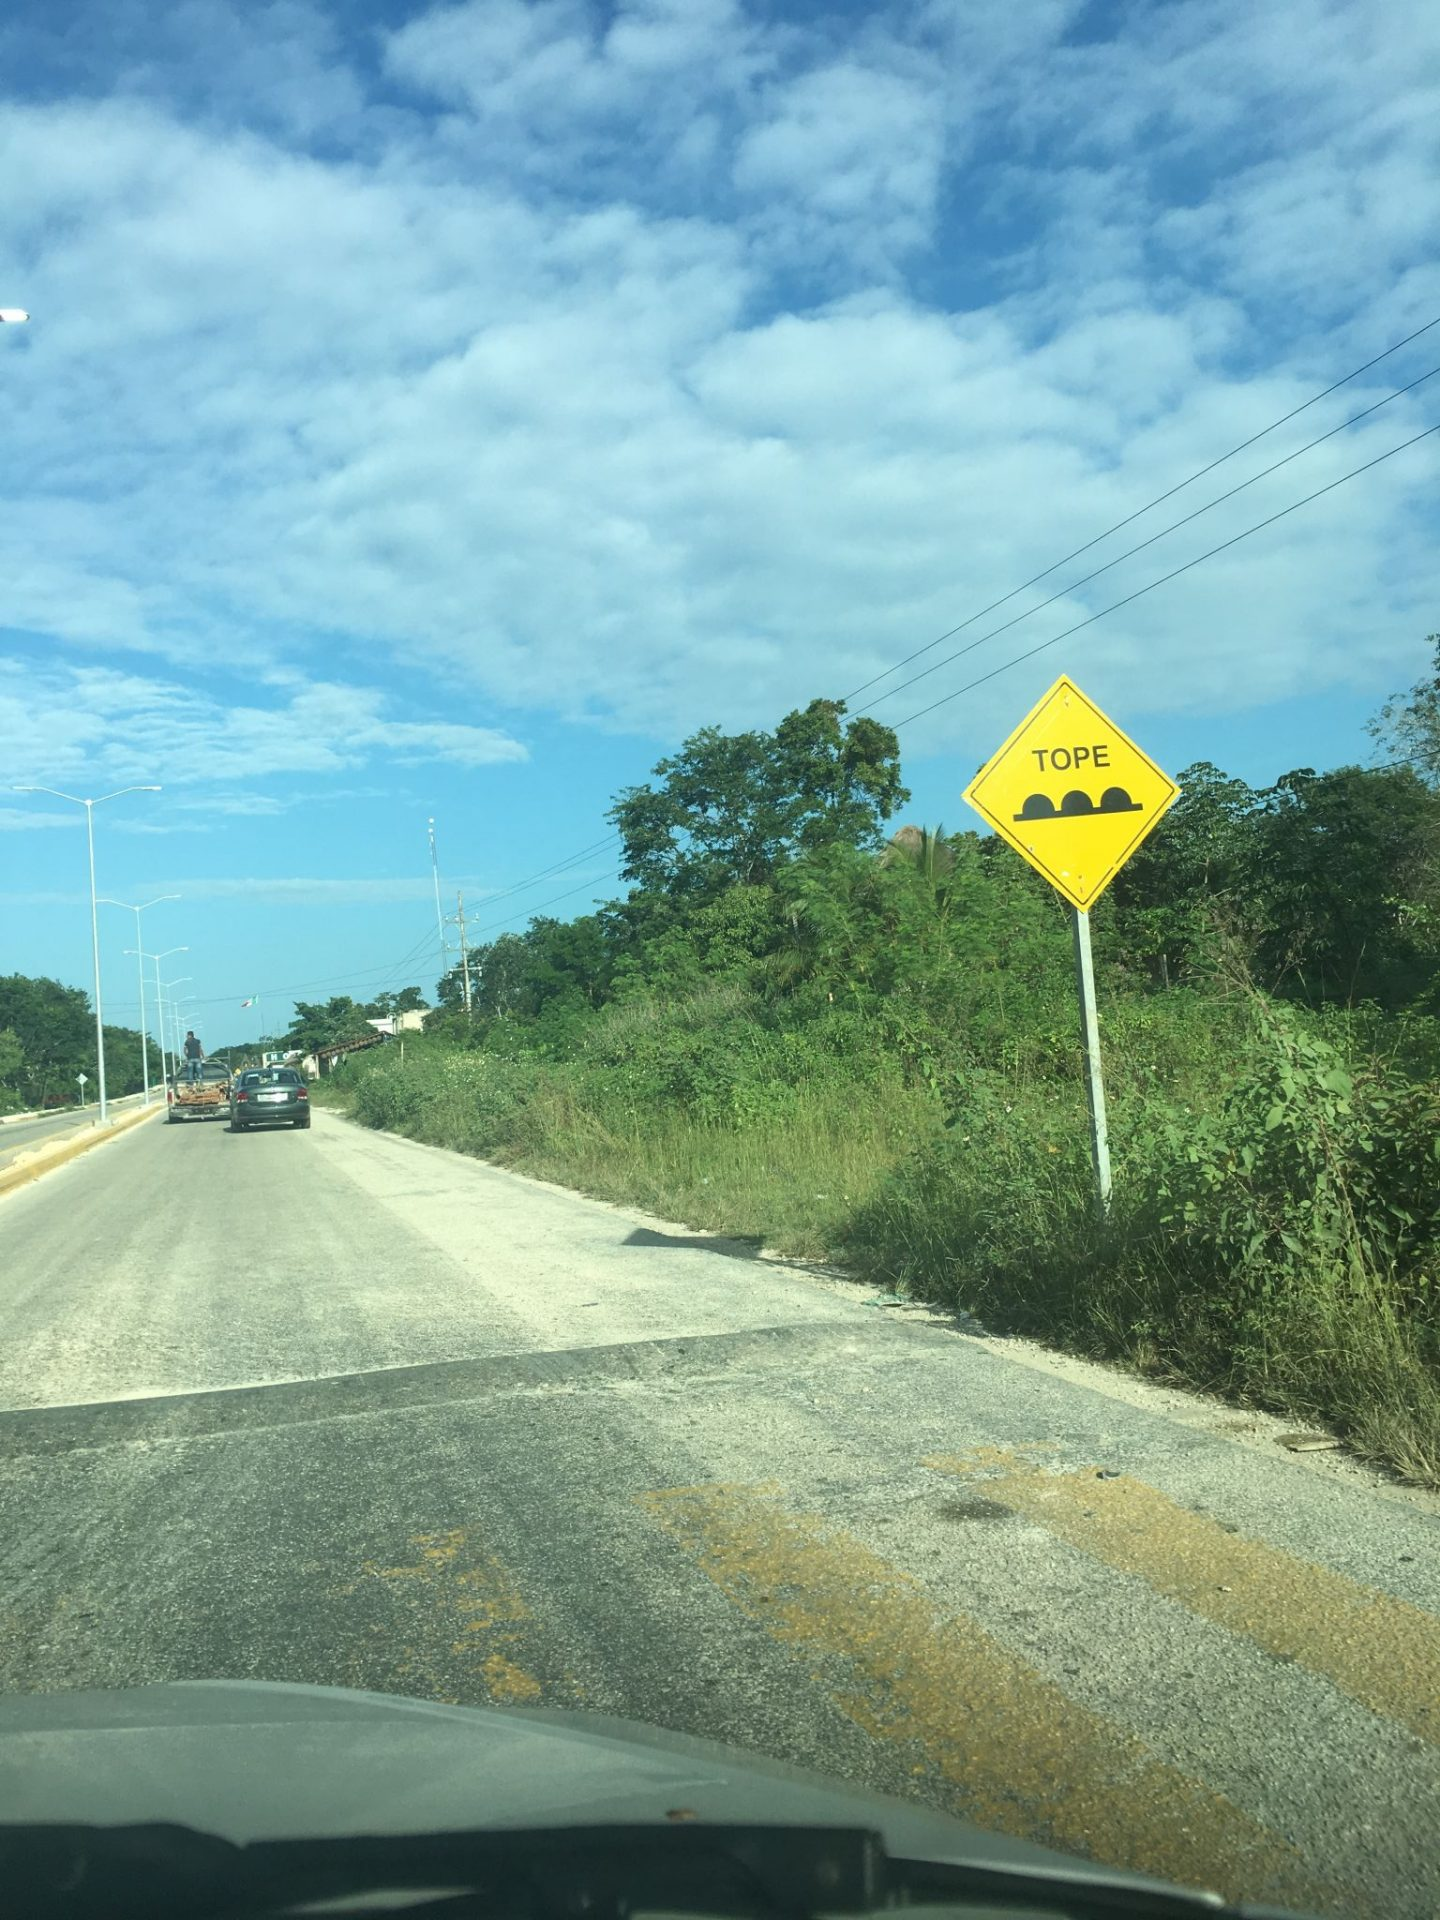 Watch out for speed bumps while driving in Mexico